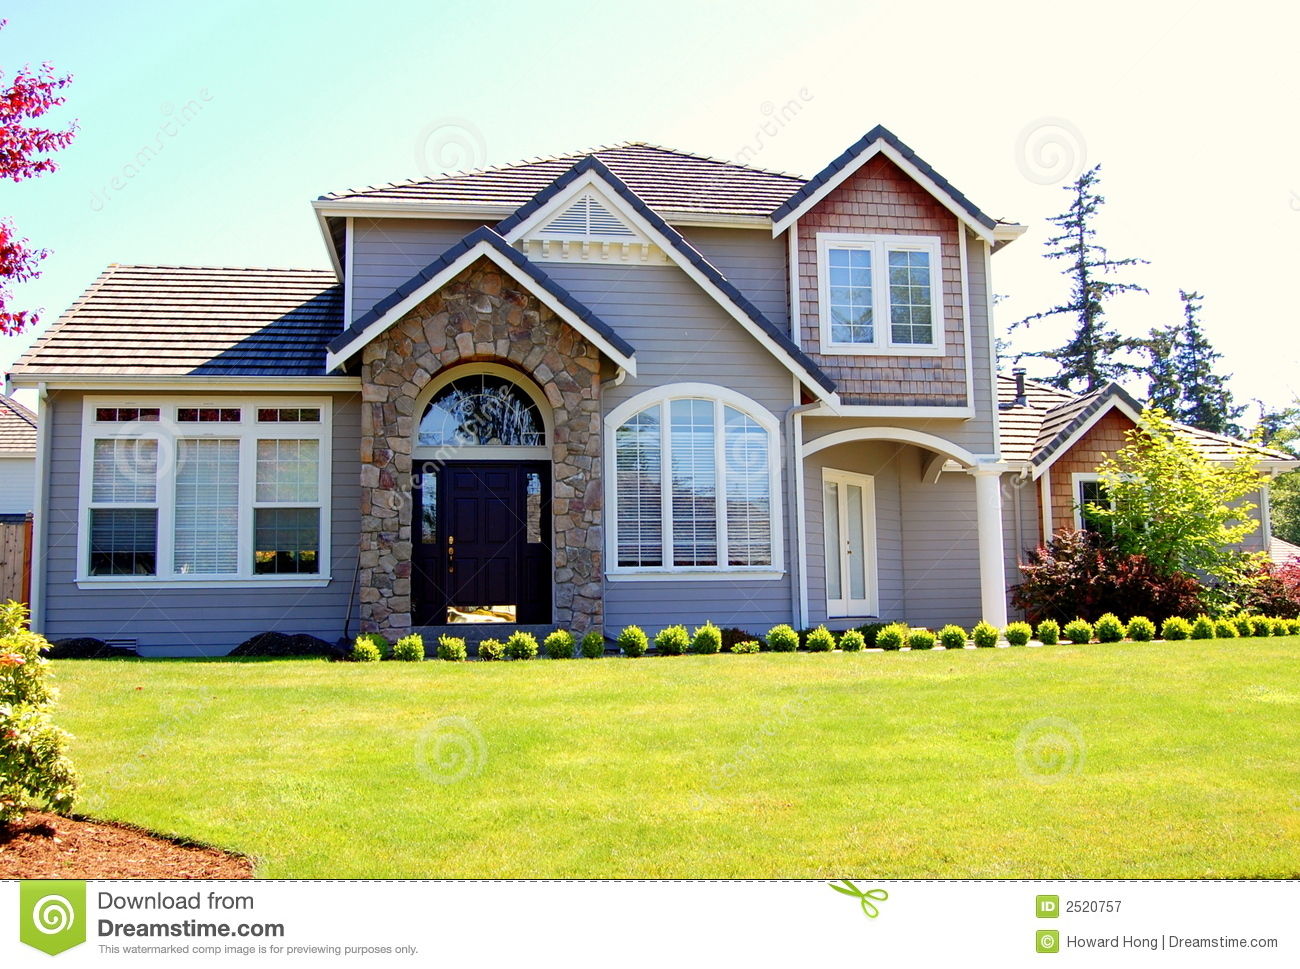 Luxury house royalty free stock photography image 2520757 for Free luxury home images